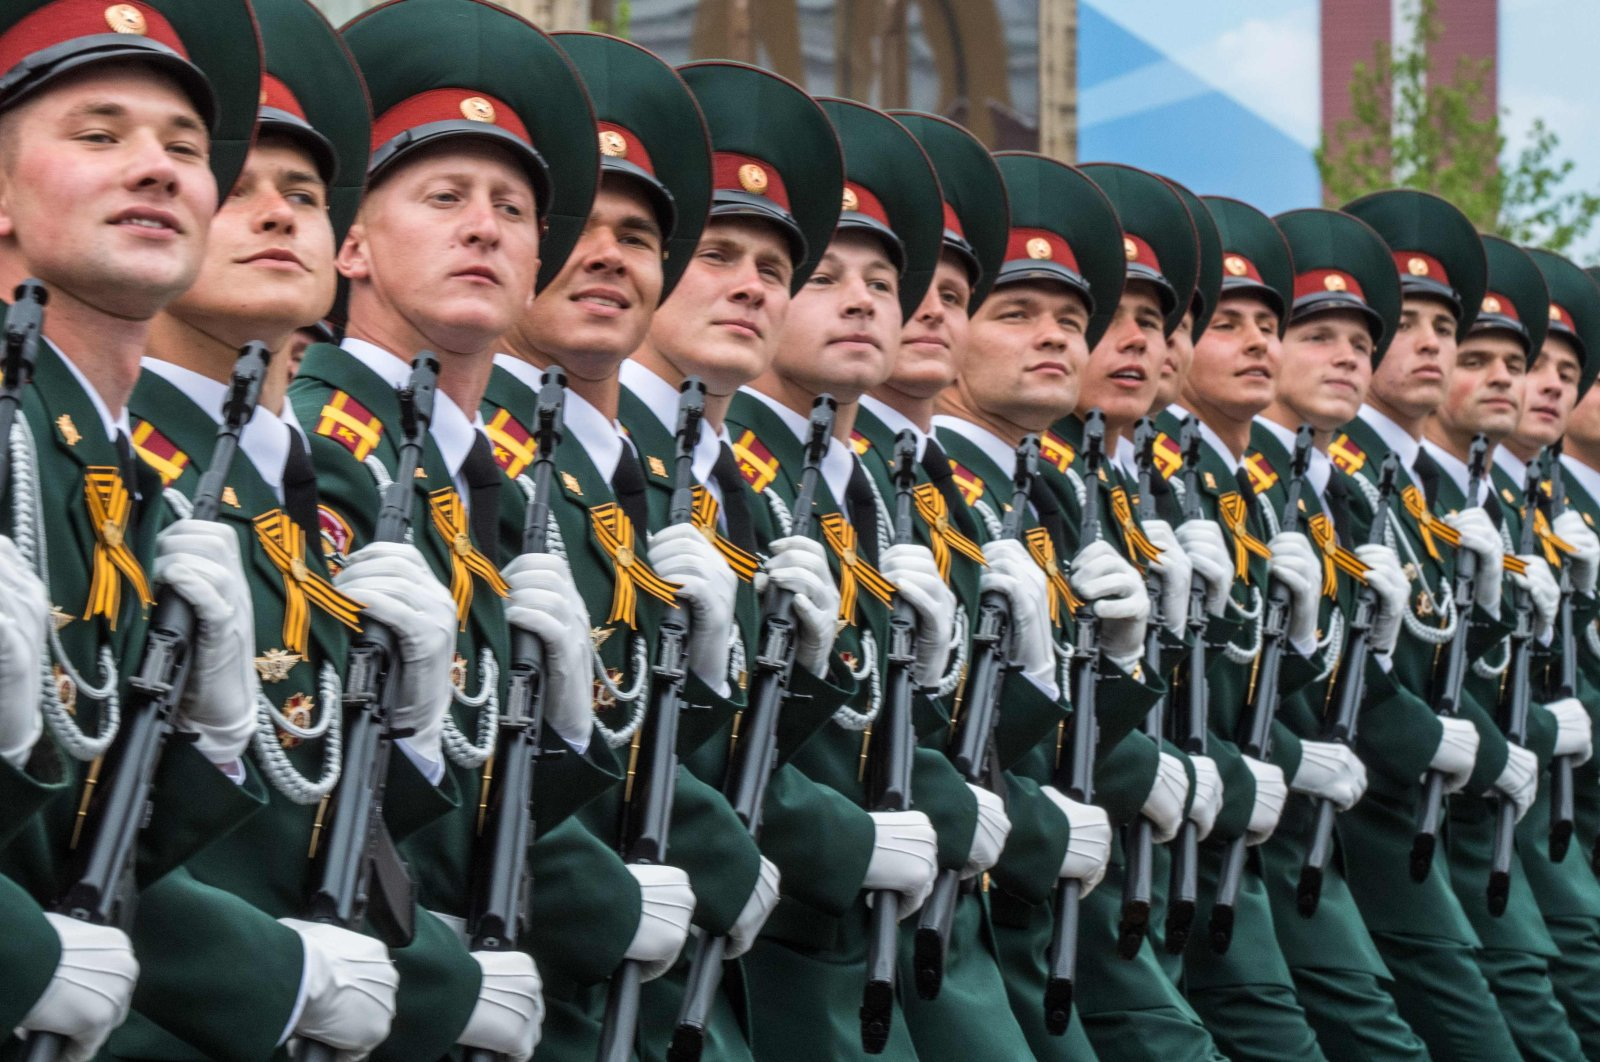 This May 9, 2019, file photo shows soldiers march through Red Square during the Victory Day military parade in downtown Moscow, as Russia celebrates the 74th anniversary of the victory over Nazi Germany. (AFP Photo)